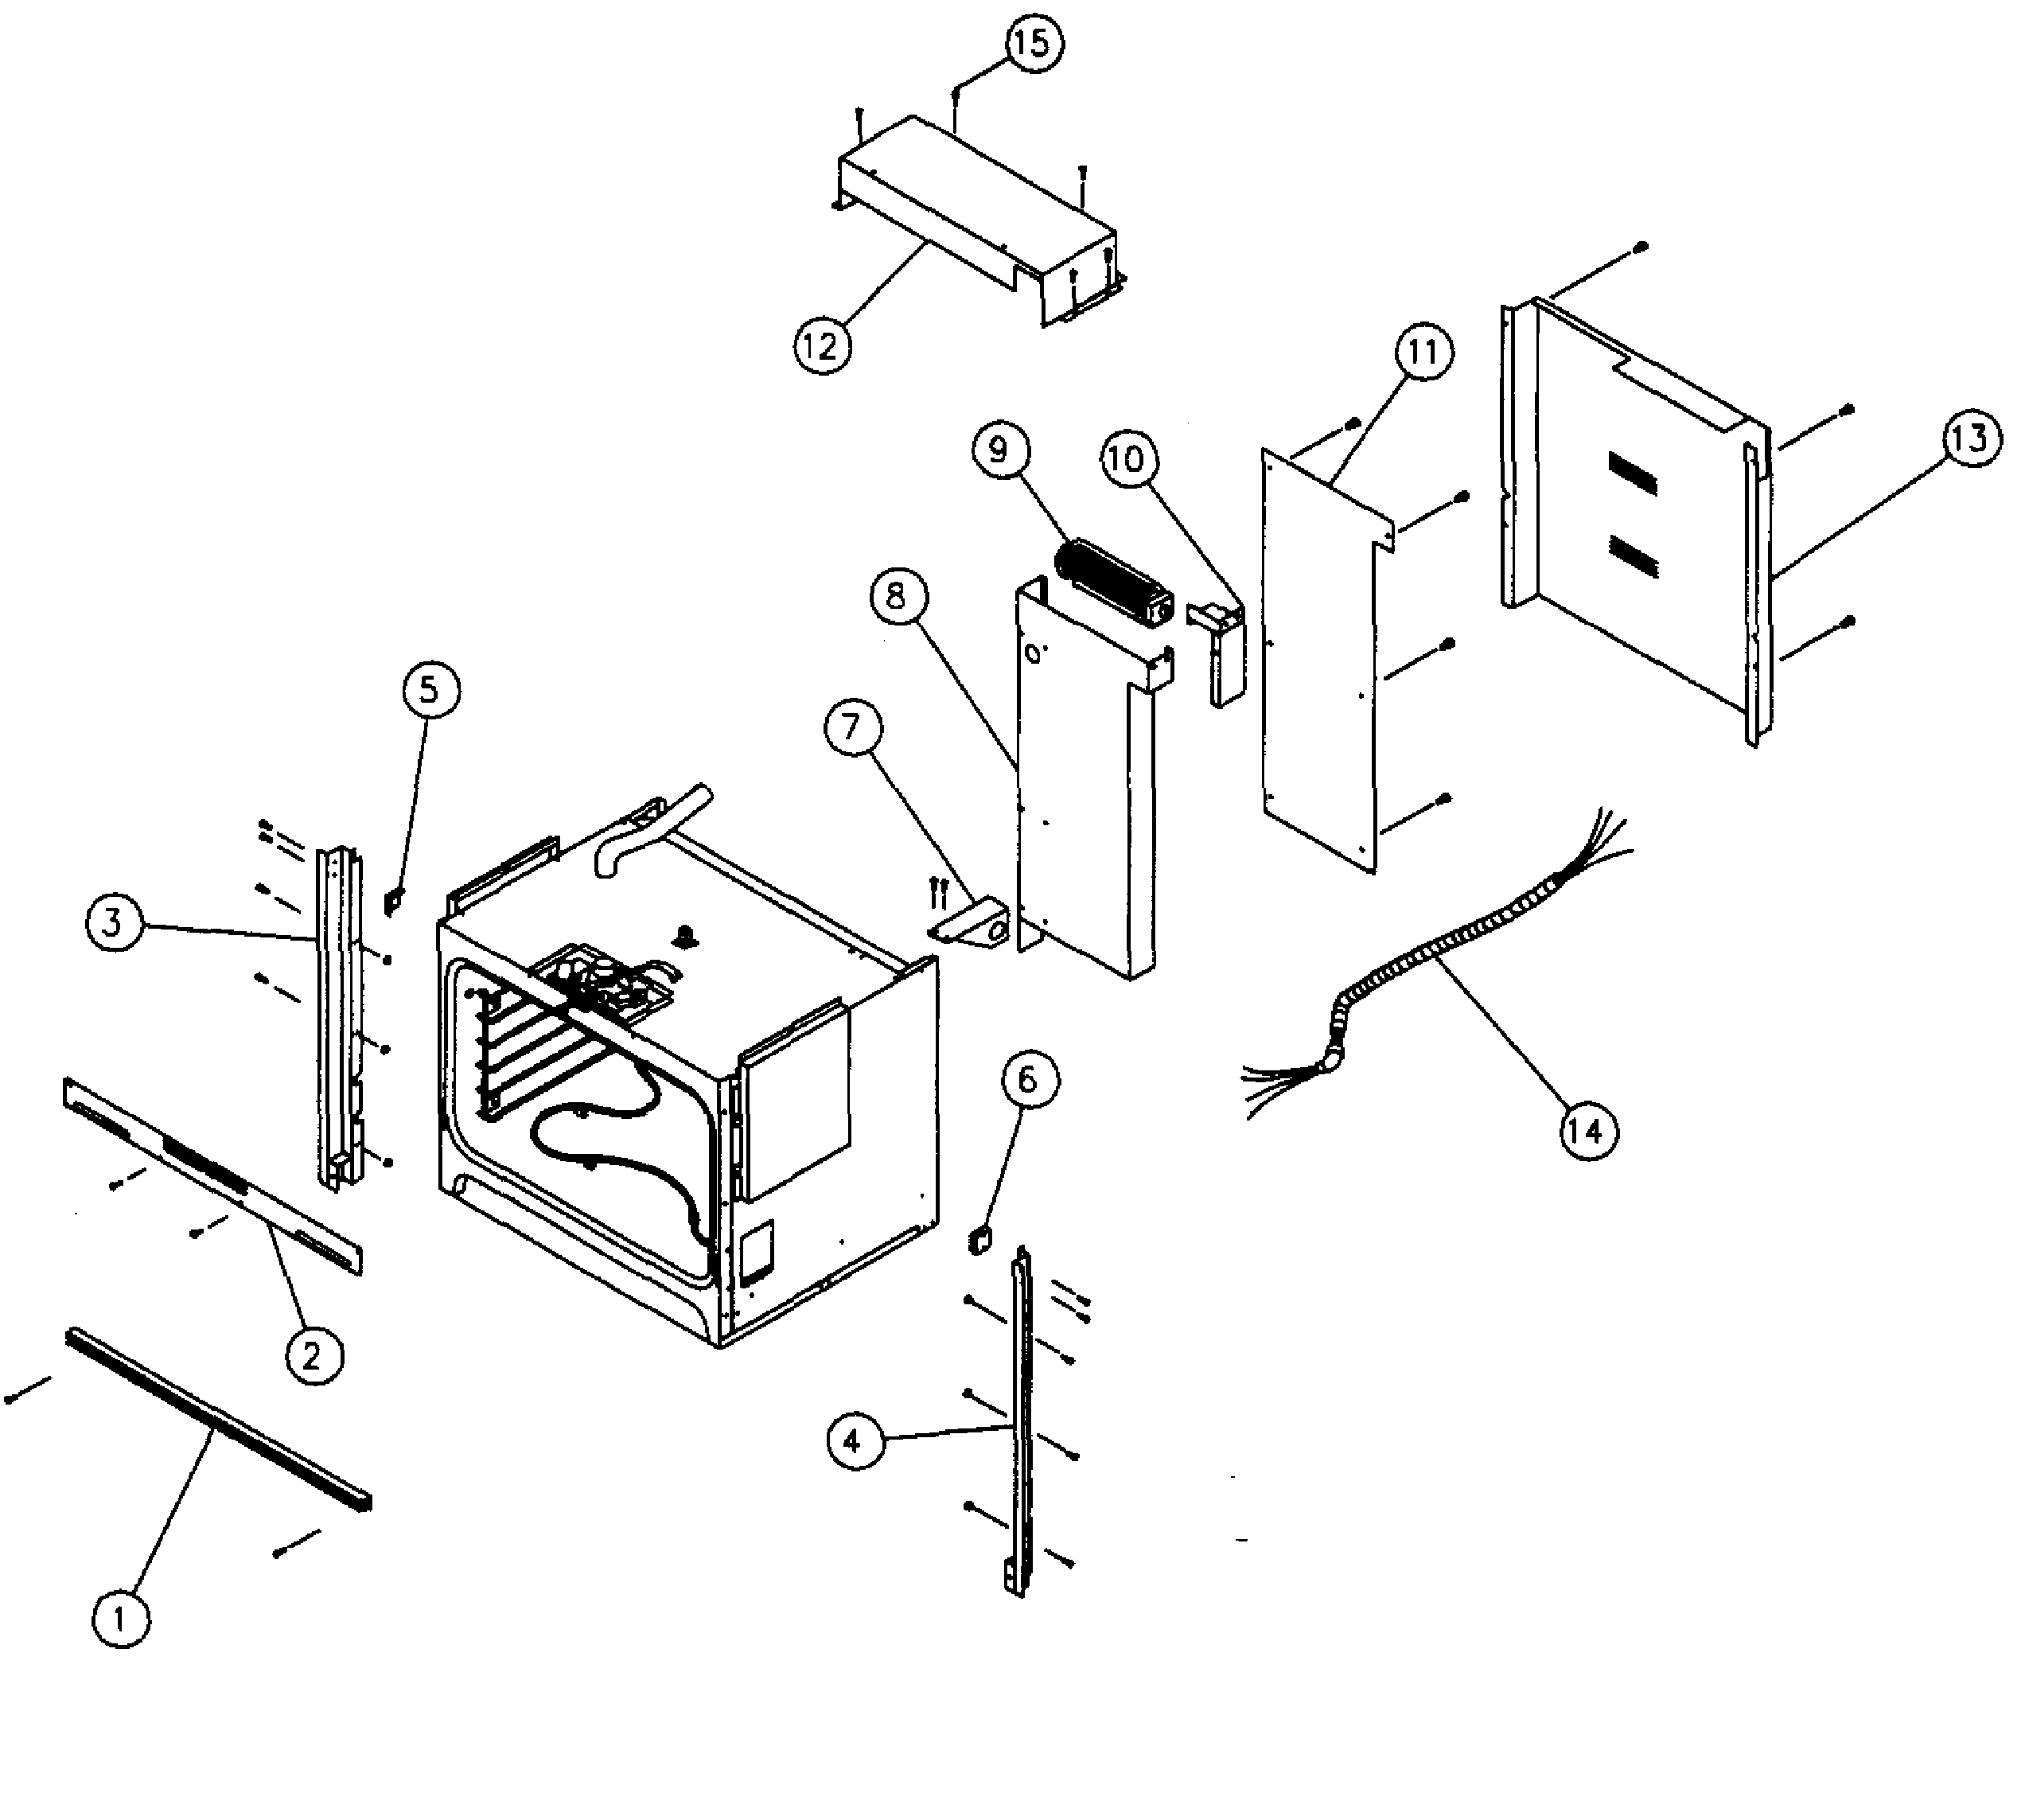 Whitfield Pellet Stove Wiring Diagram Wire Diagram 2010